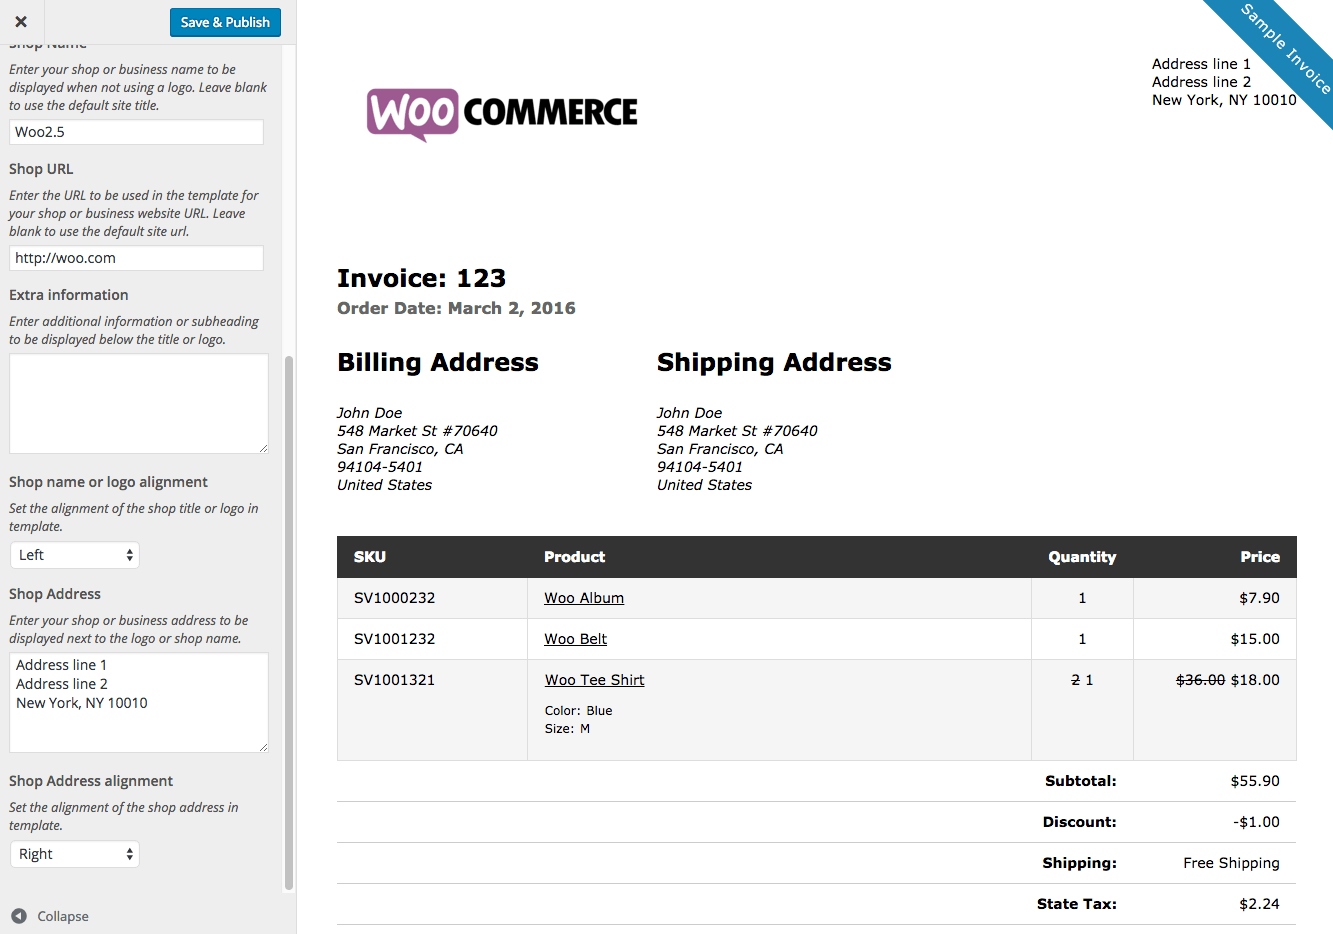 Weirdmailus  Prepossessing Woocommerce Print Invoices Amp Packing Lists  Woocommerce Docs With Great Woocommerce Print Invoices  Packing Lists Customizer With Cool Charleston Receipts Also Evaluated Receipt Settlement In Addition Avis Receipts And Digital Receipt As Well As Missing Receipt Form Additionally Autozone Return Policy Without Receipt From Docswoocommercecom With Weirdmailus  Great Woocommerce Print Invoices Amp Packing Lists  Woocommerce Docs With Cool Woocommerce Print Invoices  Packing Lists Customizer And Prepossessing Charleston Receipts Also Evaluated Receipt Settlement In Addition Avis Receipts From Docswoocommercecom